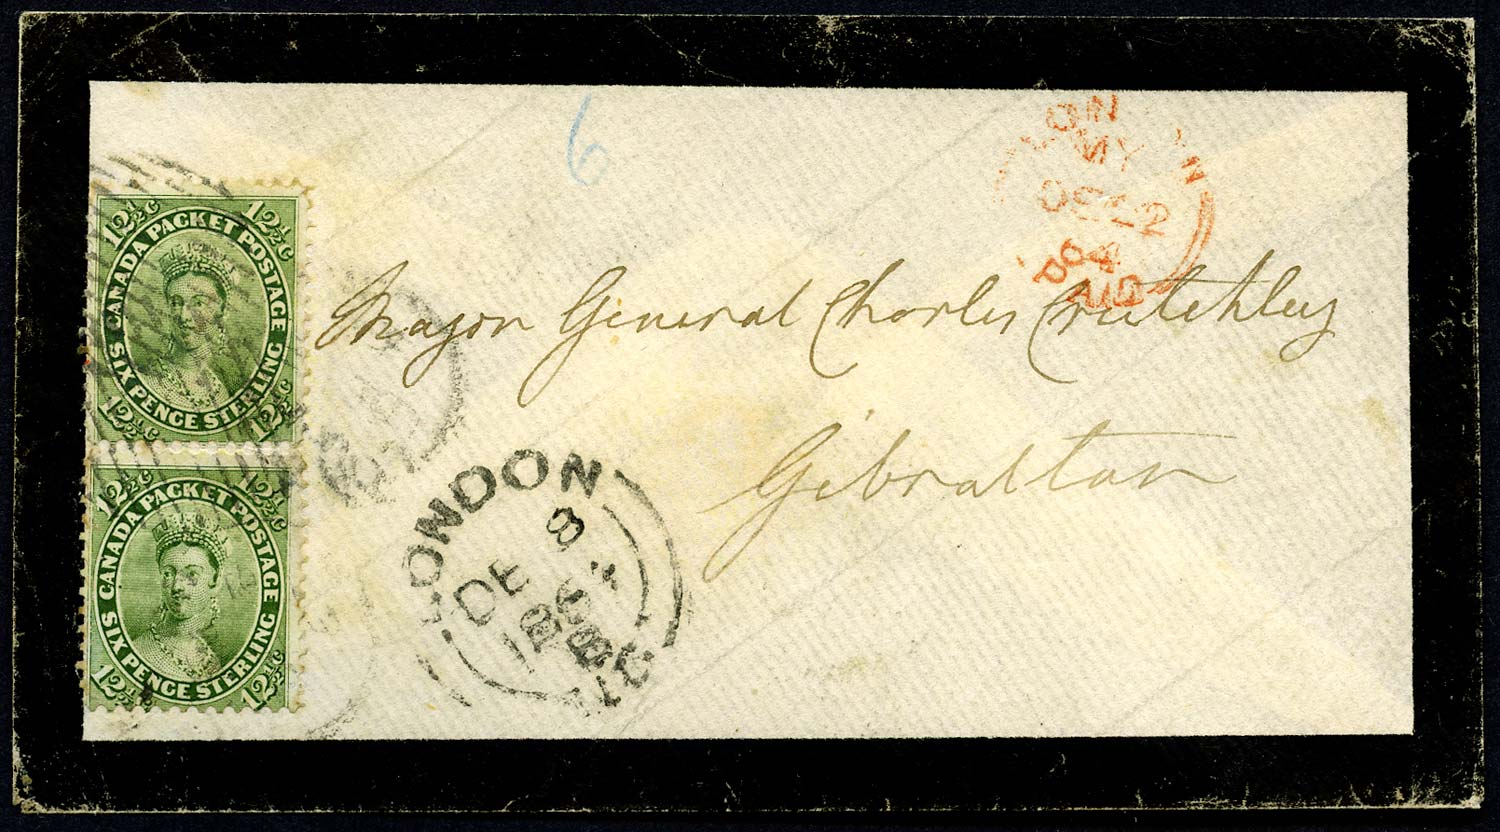 CANADA 1864  SG40 Cover from London, Ont, to GIBRALTAR at 23c rate